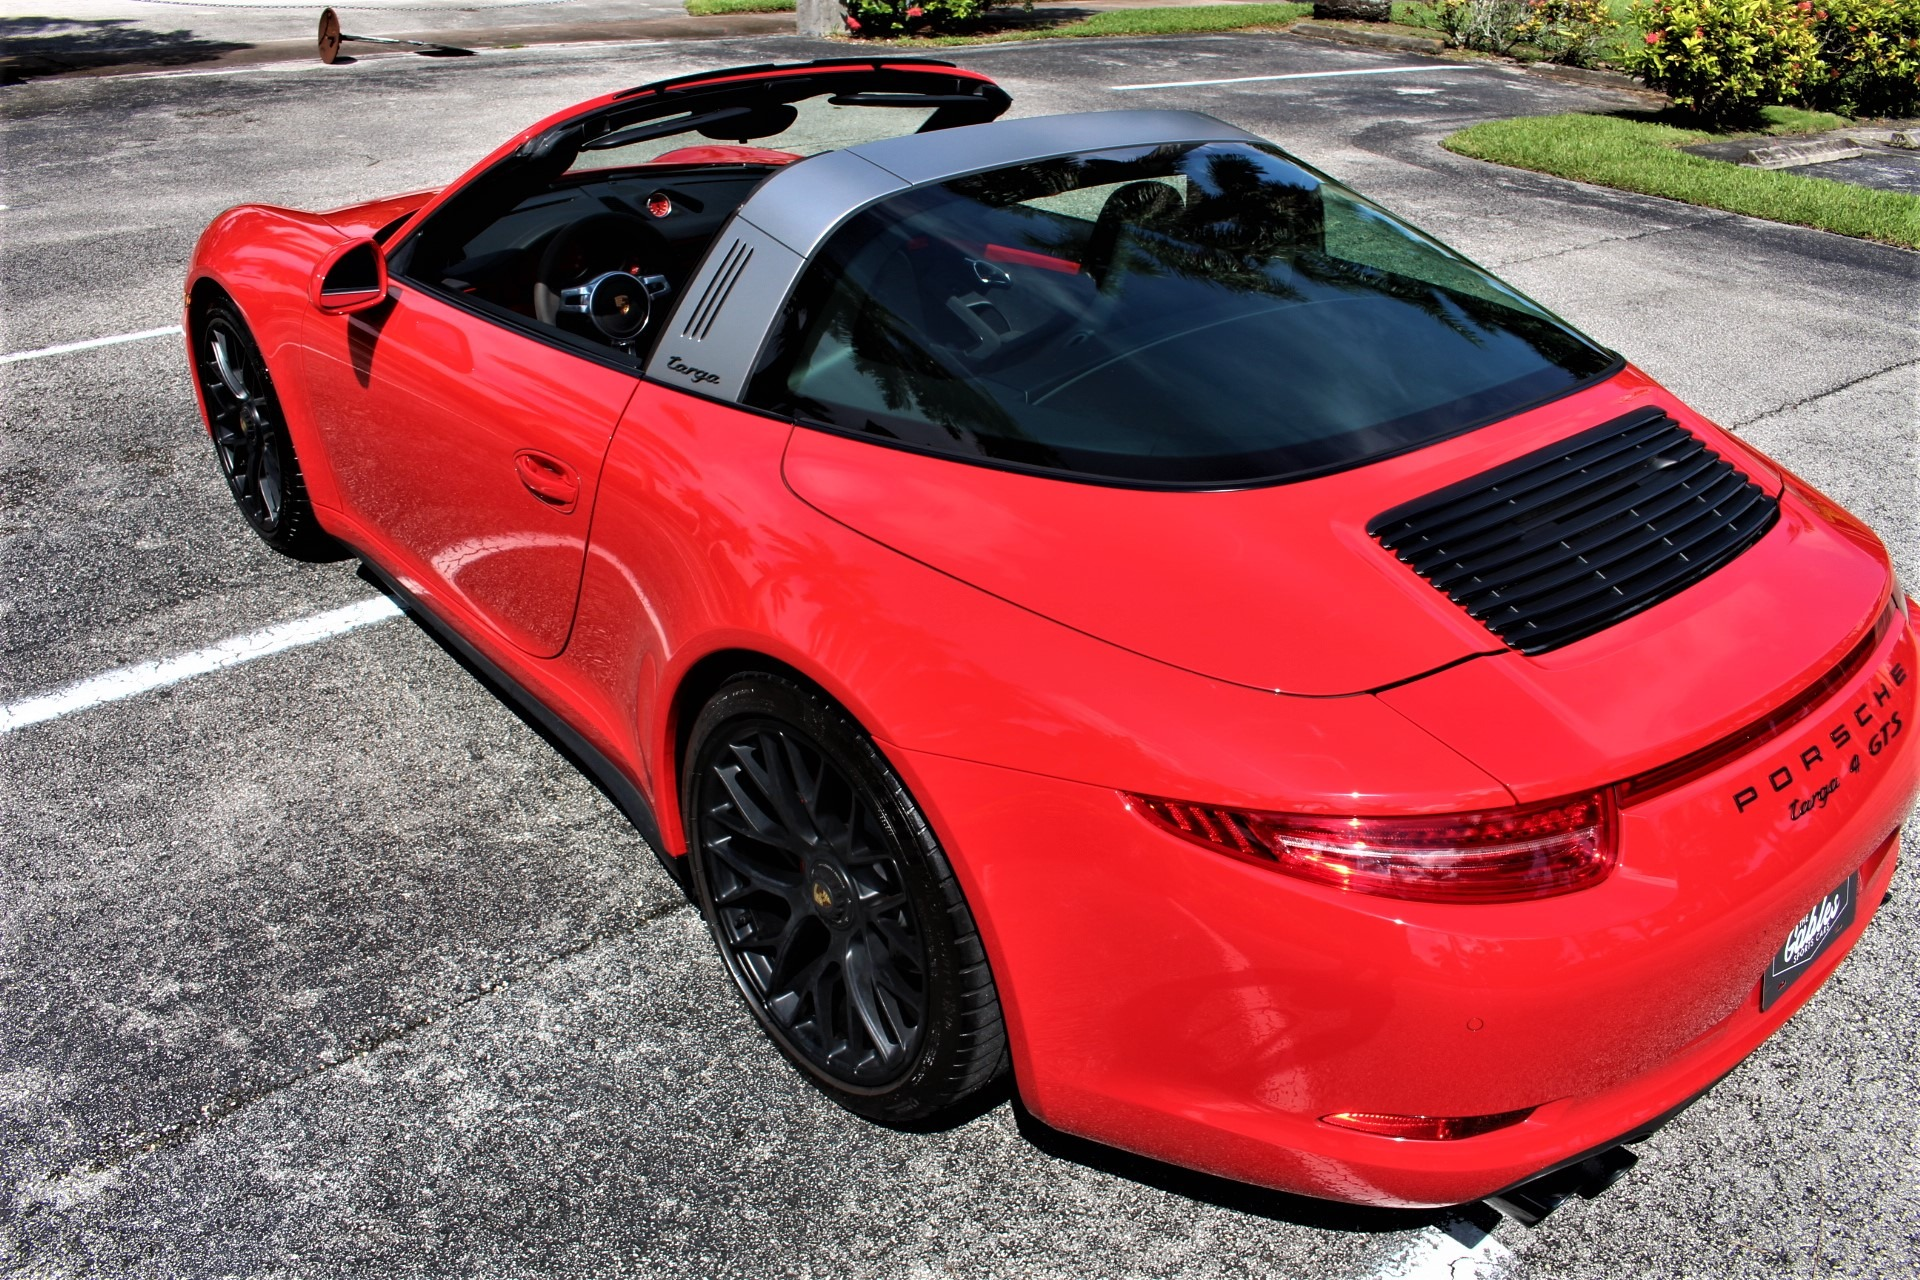 Used 2016 Porsche 911 Targa 4 GTS for sale Sold at The Gables Sports Cars in Miami FL 33146 1